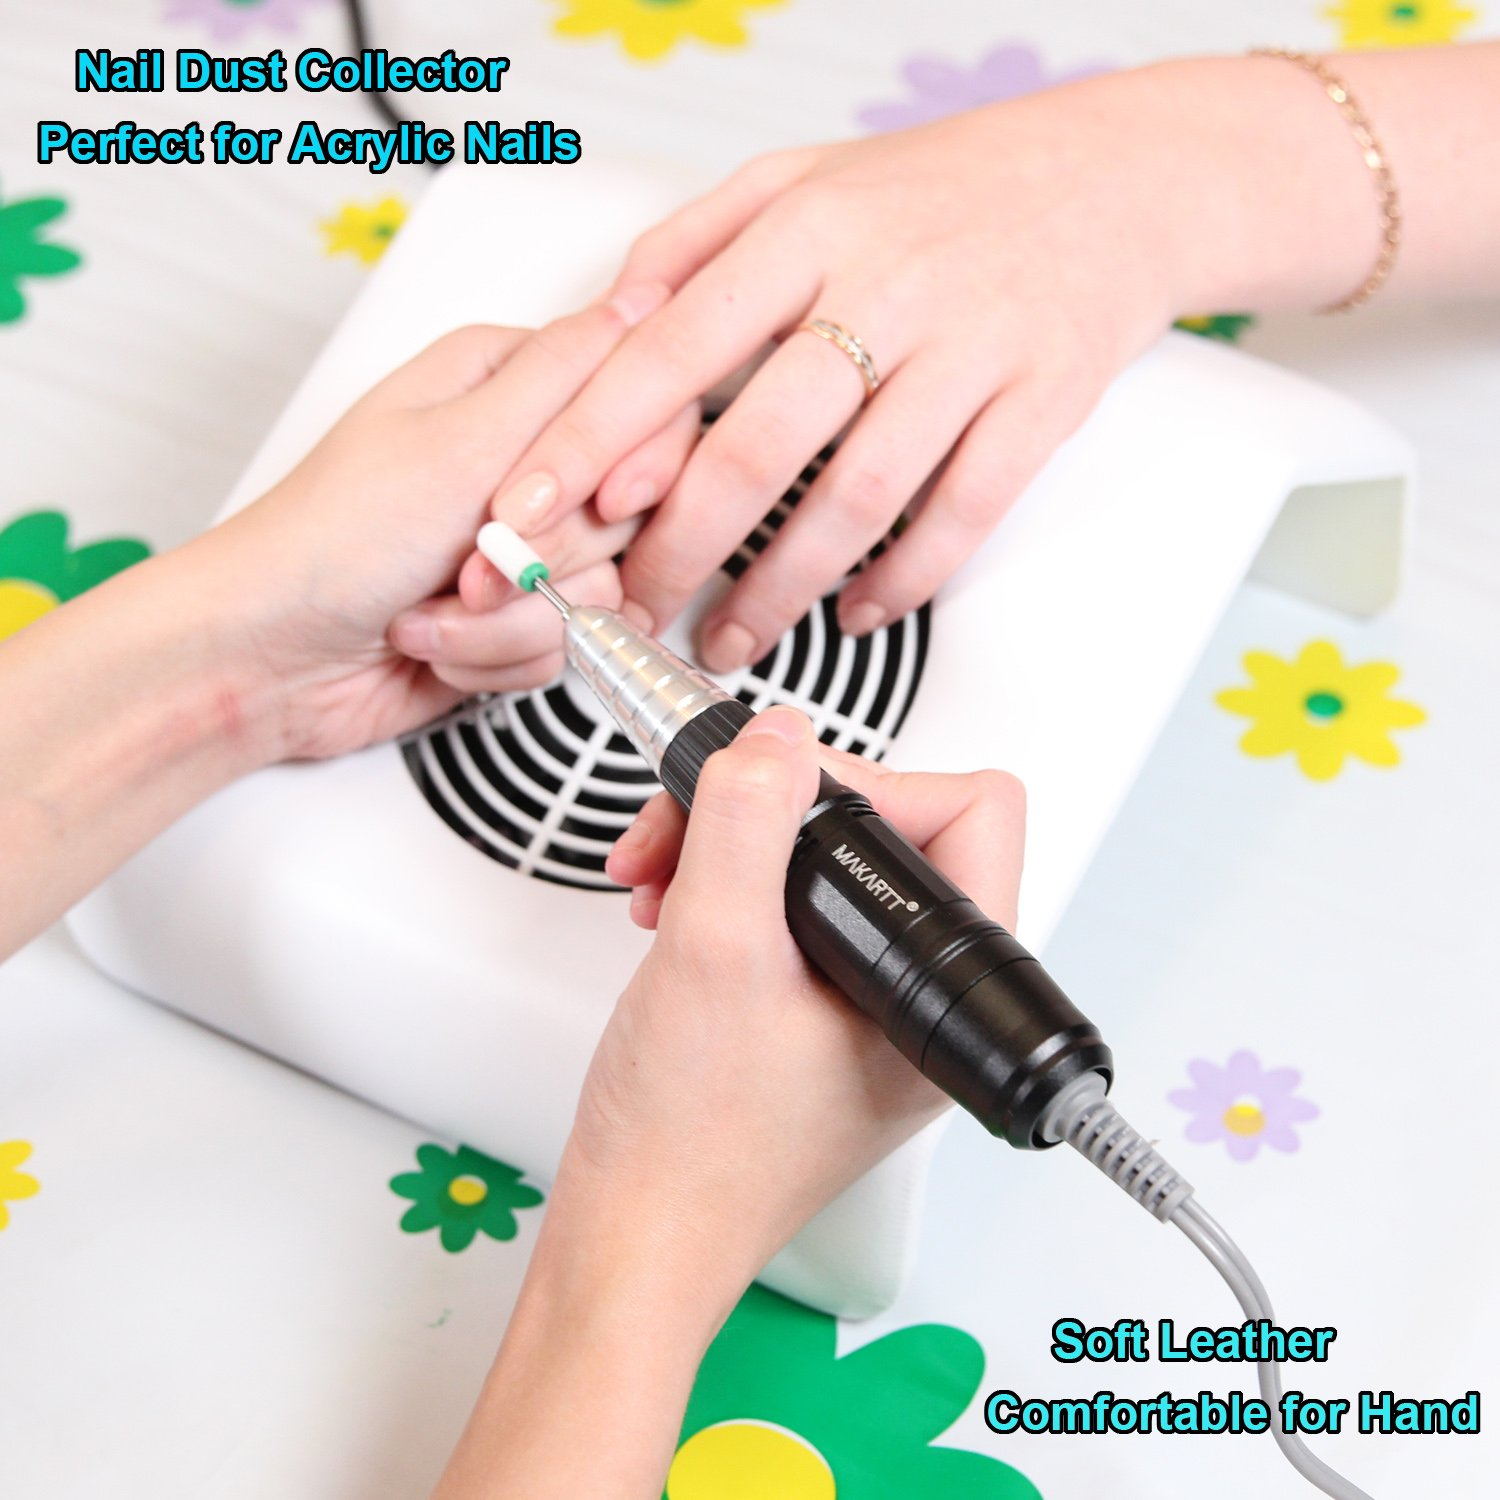 Amazon.com: MAKARTT Nail Art Dust Suction Collector Vacuum Cleaner ...